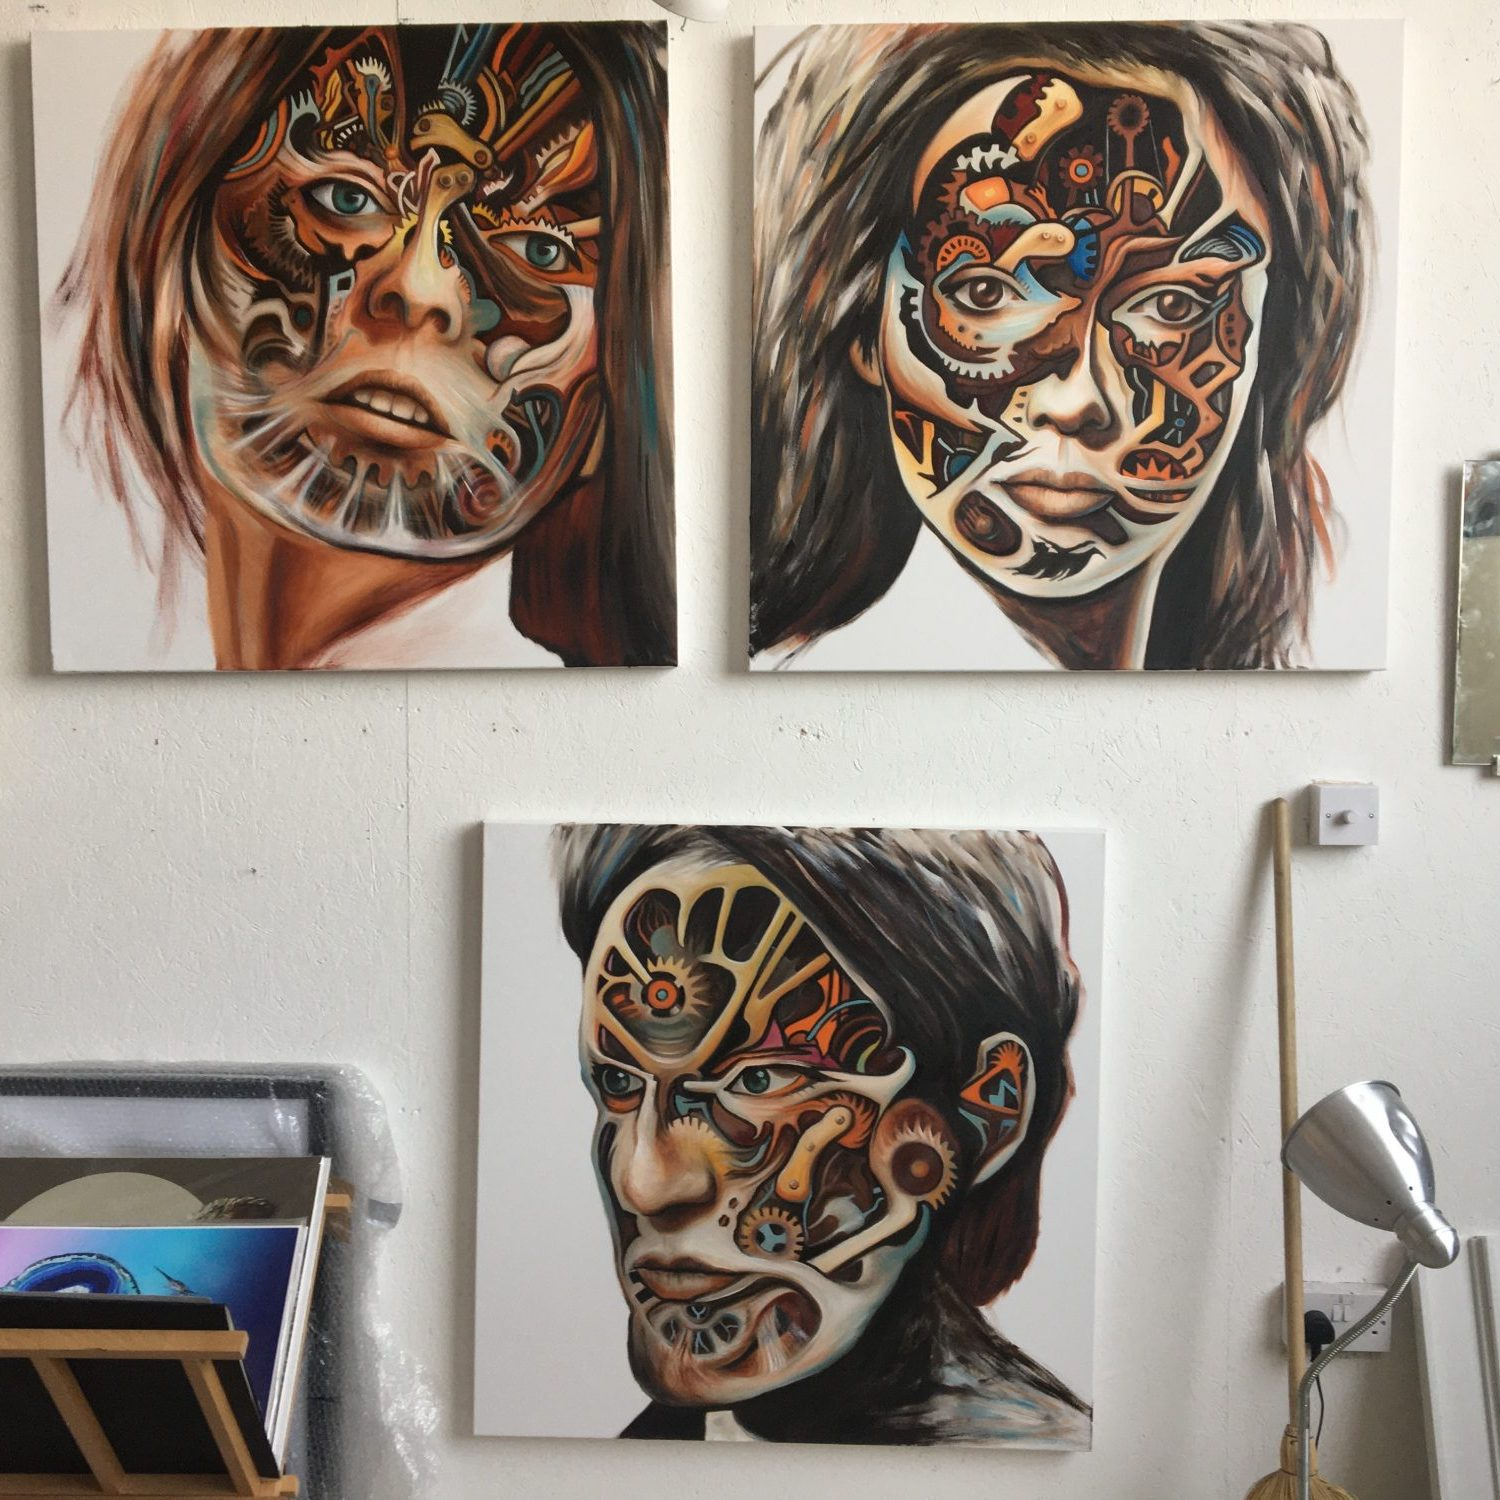 The Mechanical Paradise paintings on the studio wall